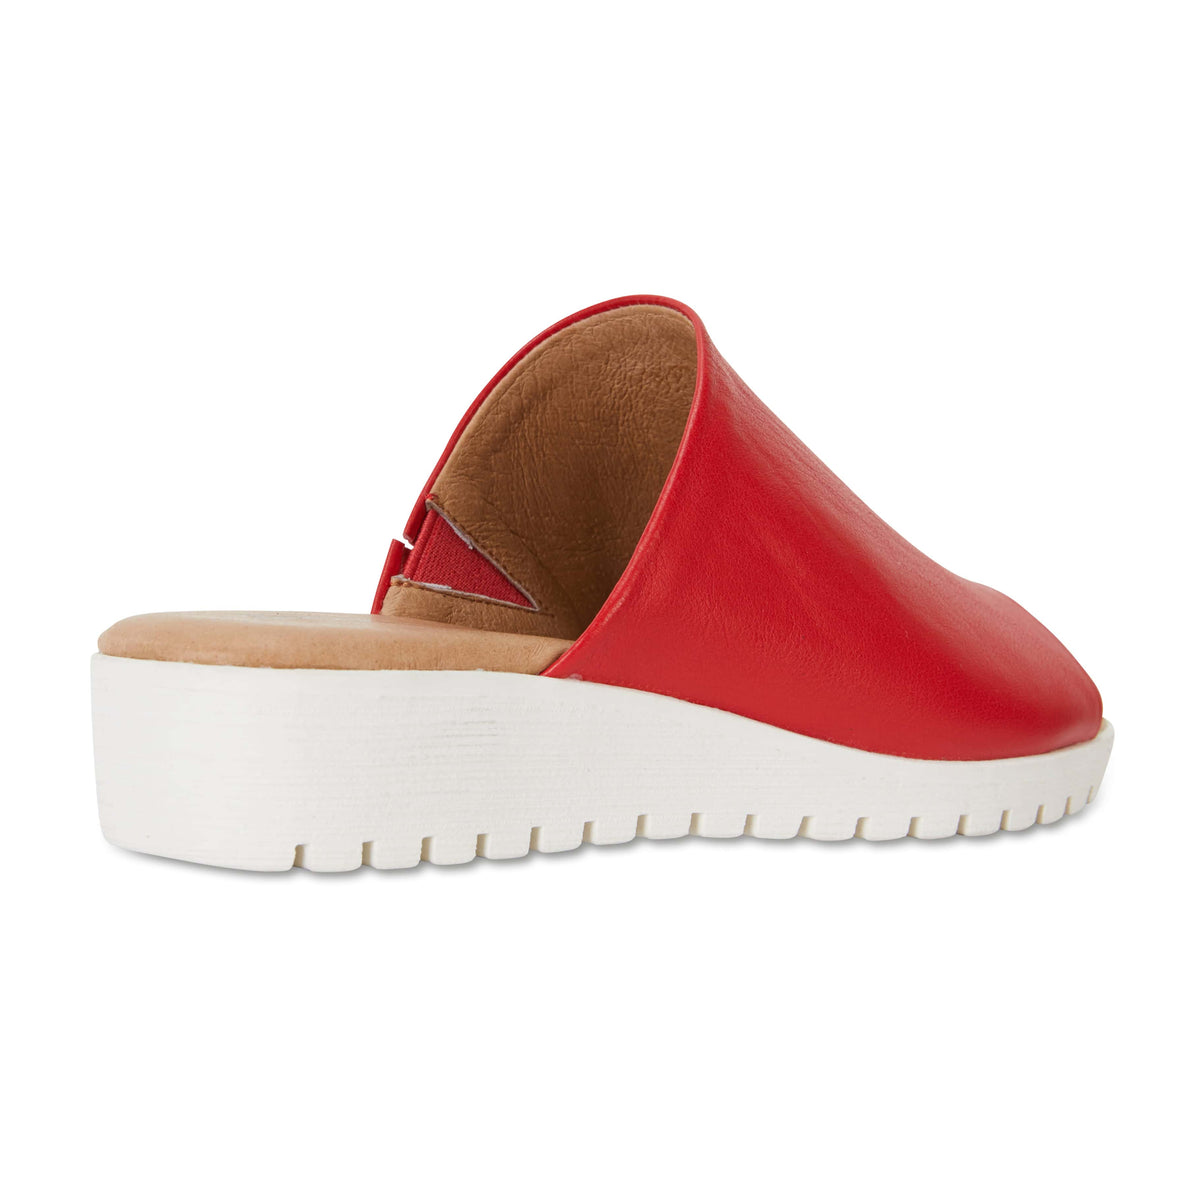 Fate Slide in Red Leather